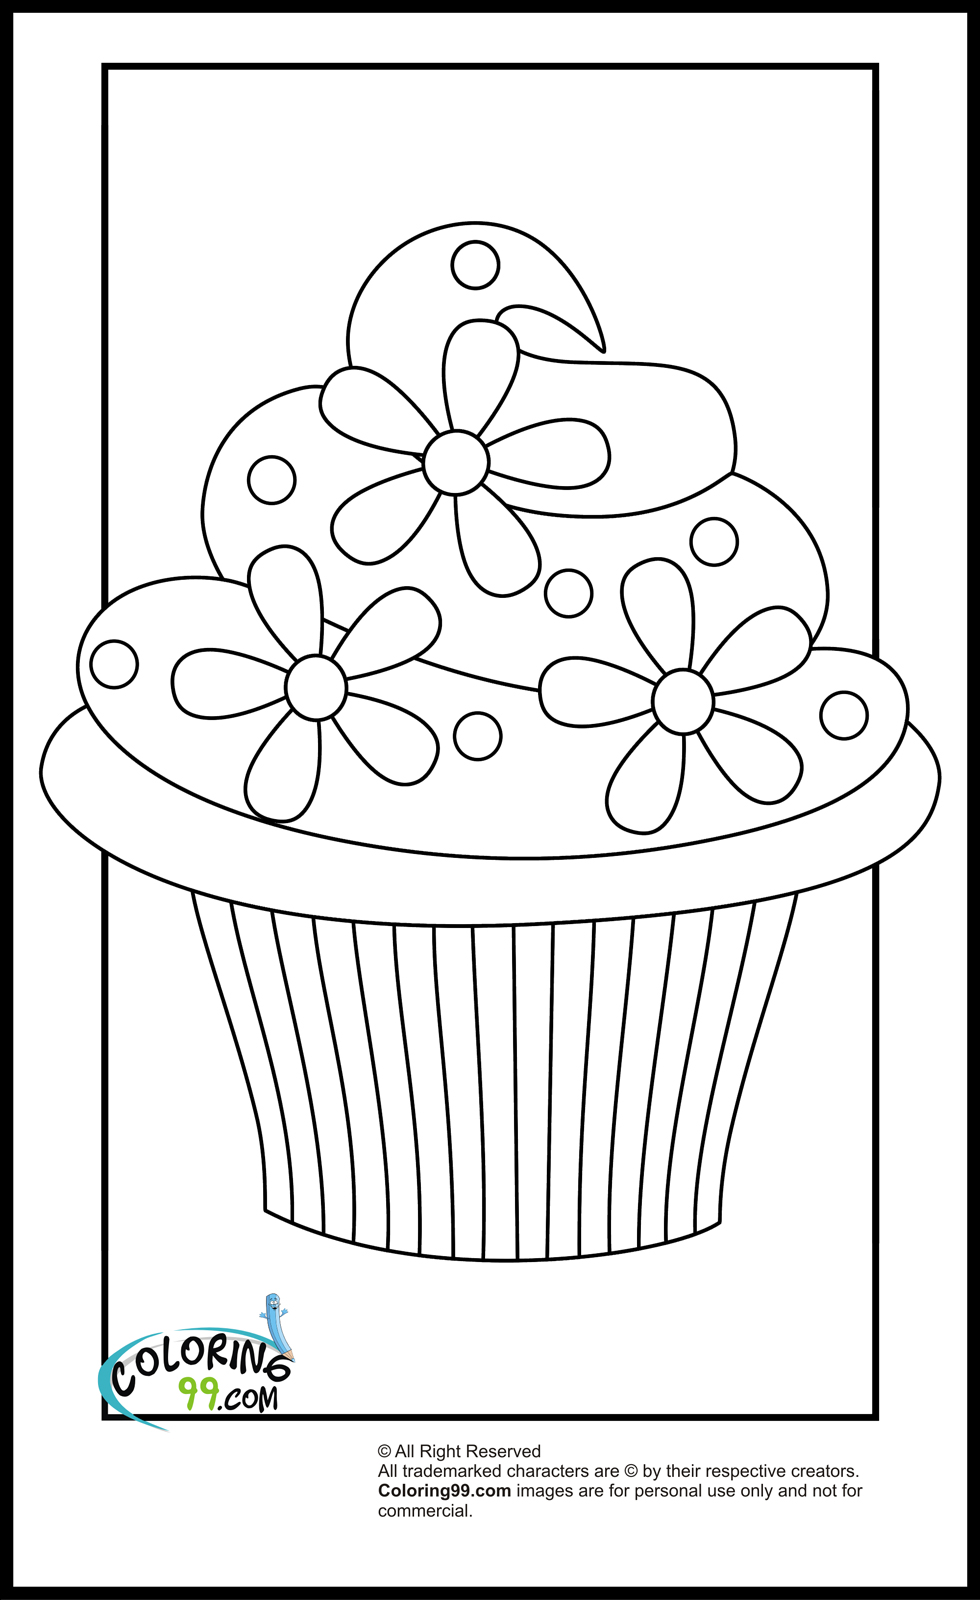 cup cake coloring pictures cupcakes hello kitty simple cupcakes adult coloring pages pictures cup cake coloring